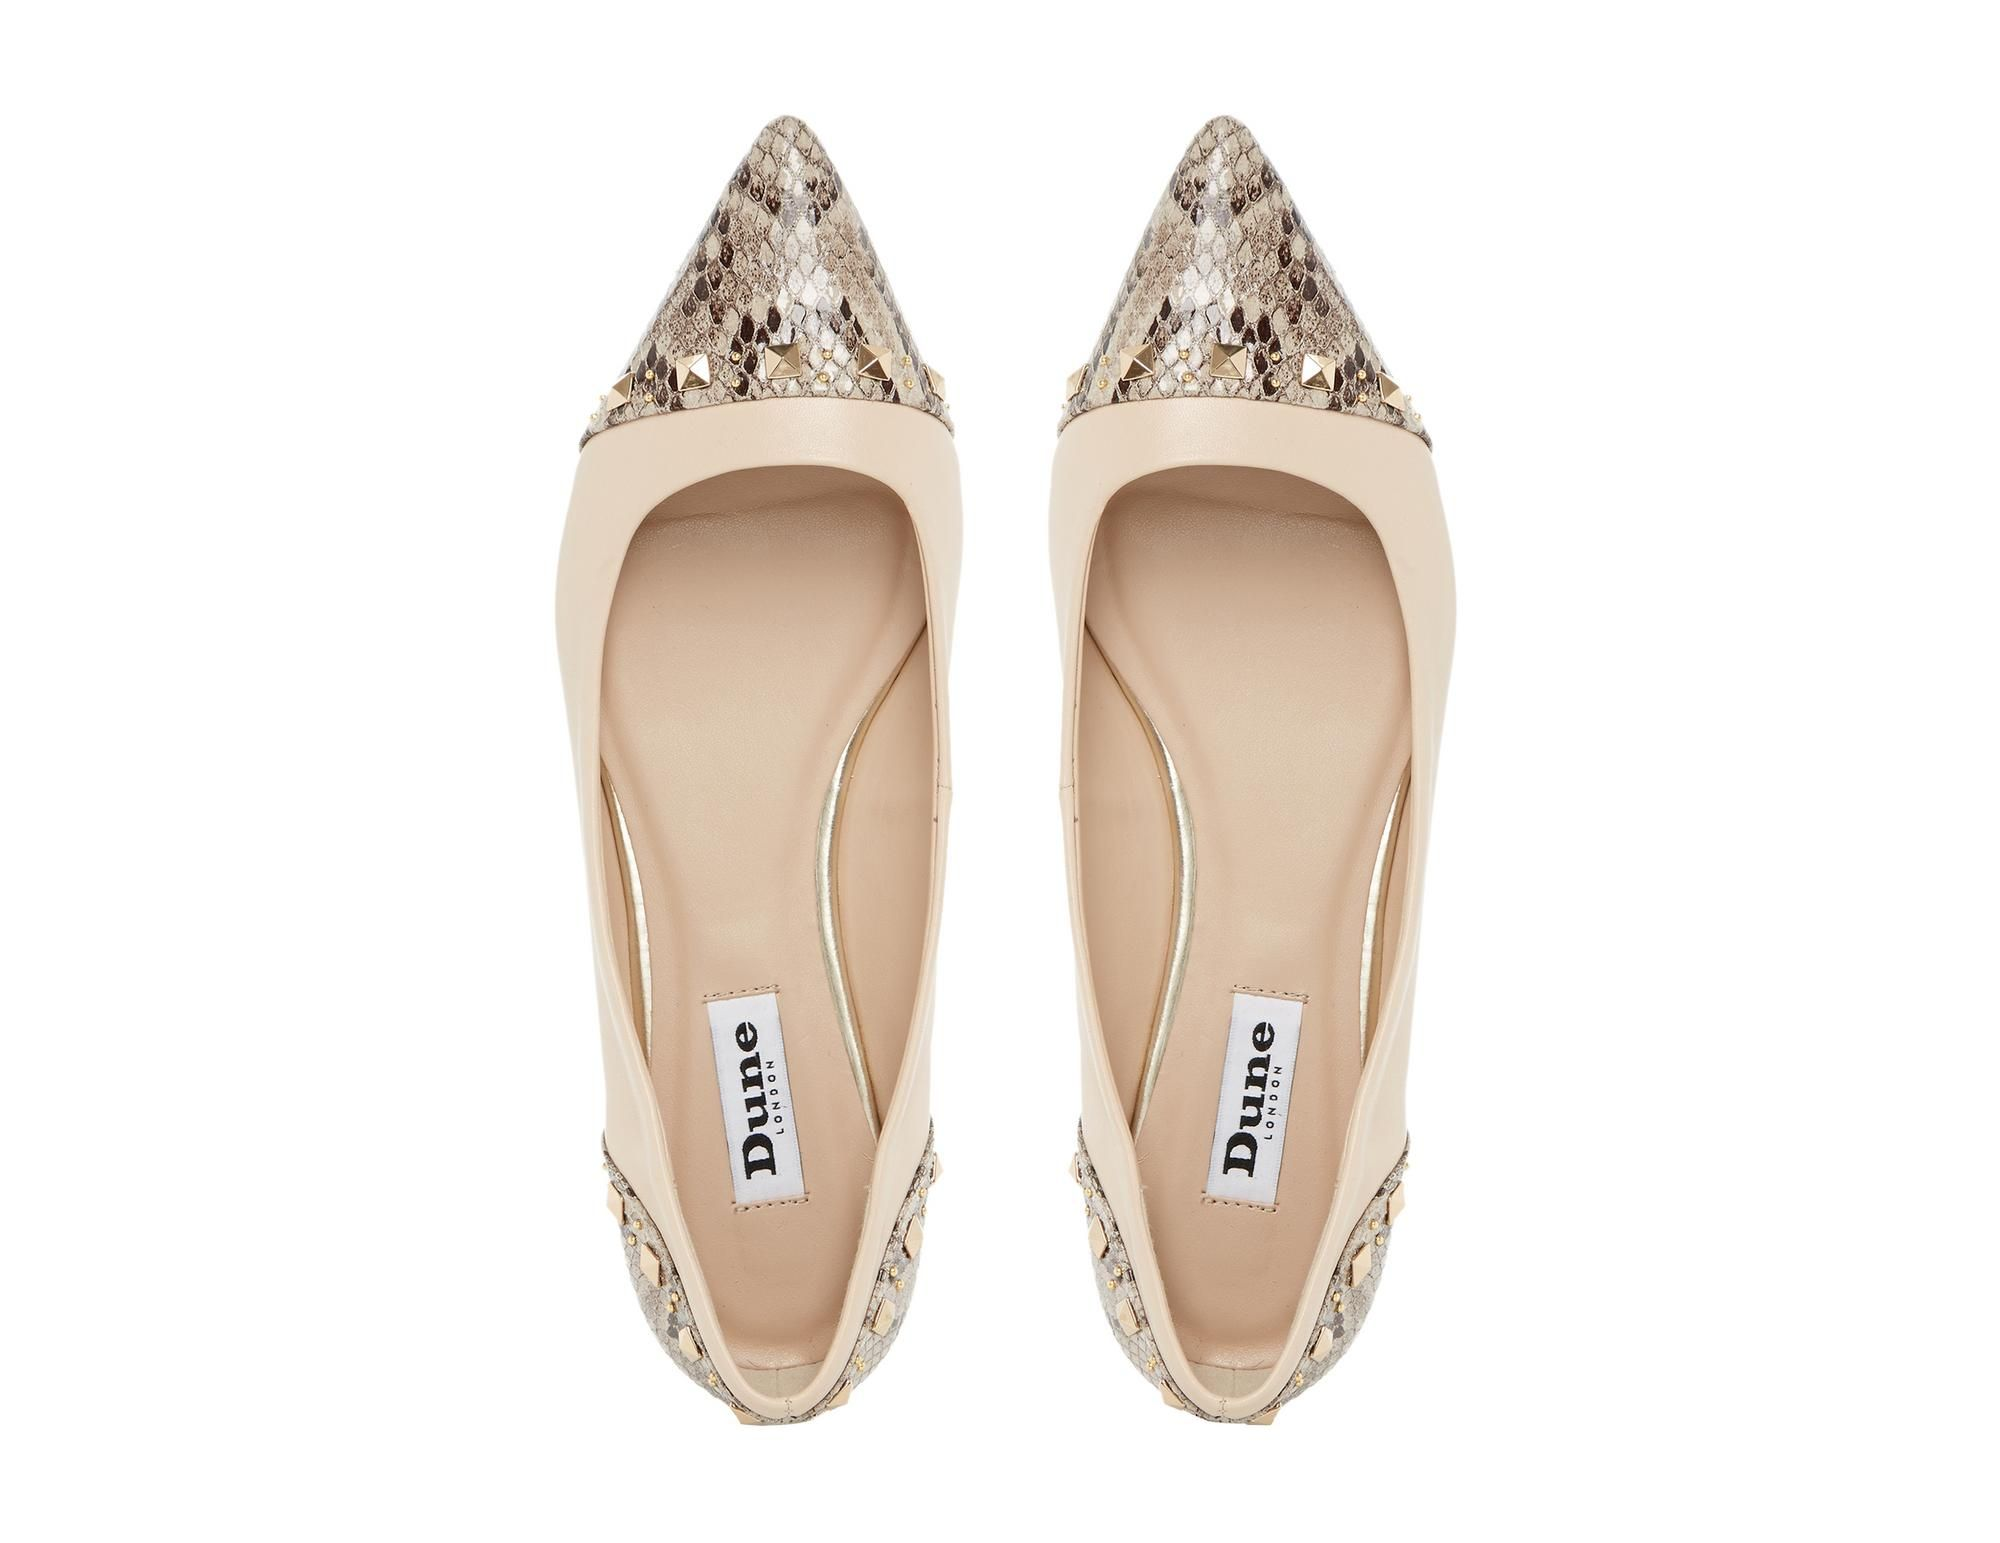 Mala - Your New Favorite Flats